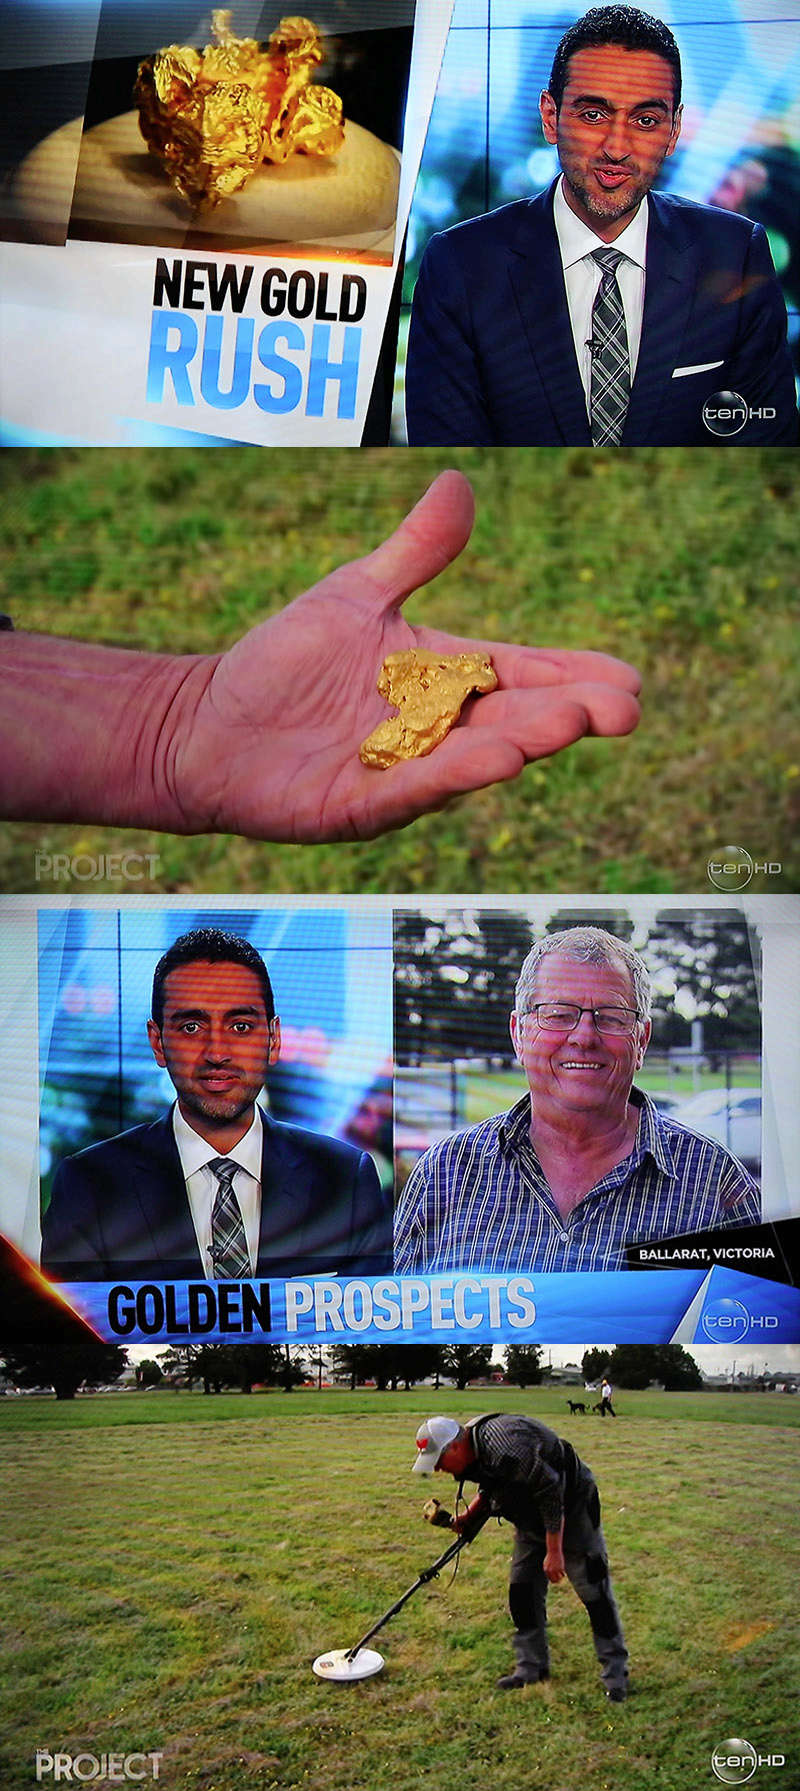 7:30pm TONIGHT on The Project television show - Gold Prospecting. Screen12